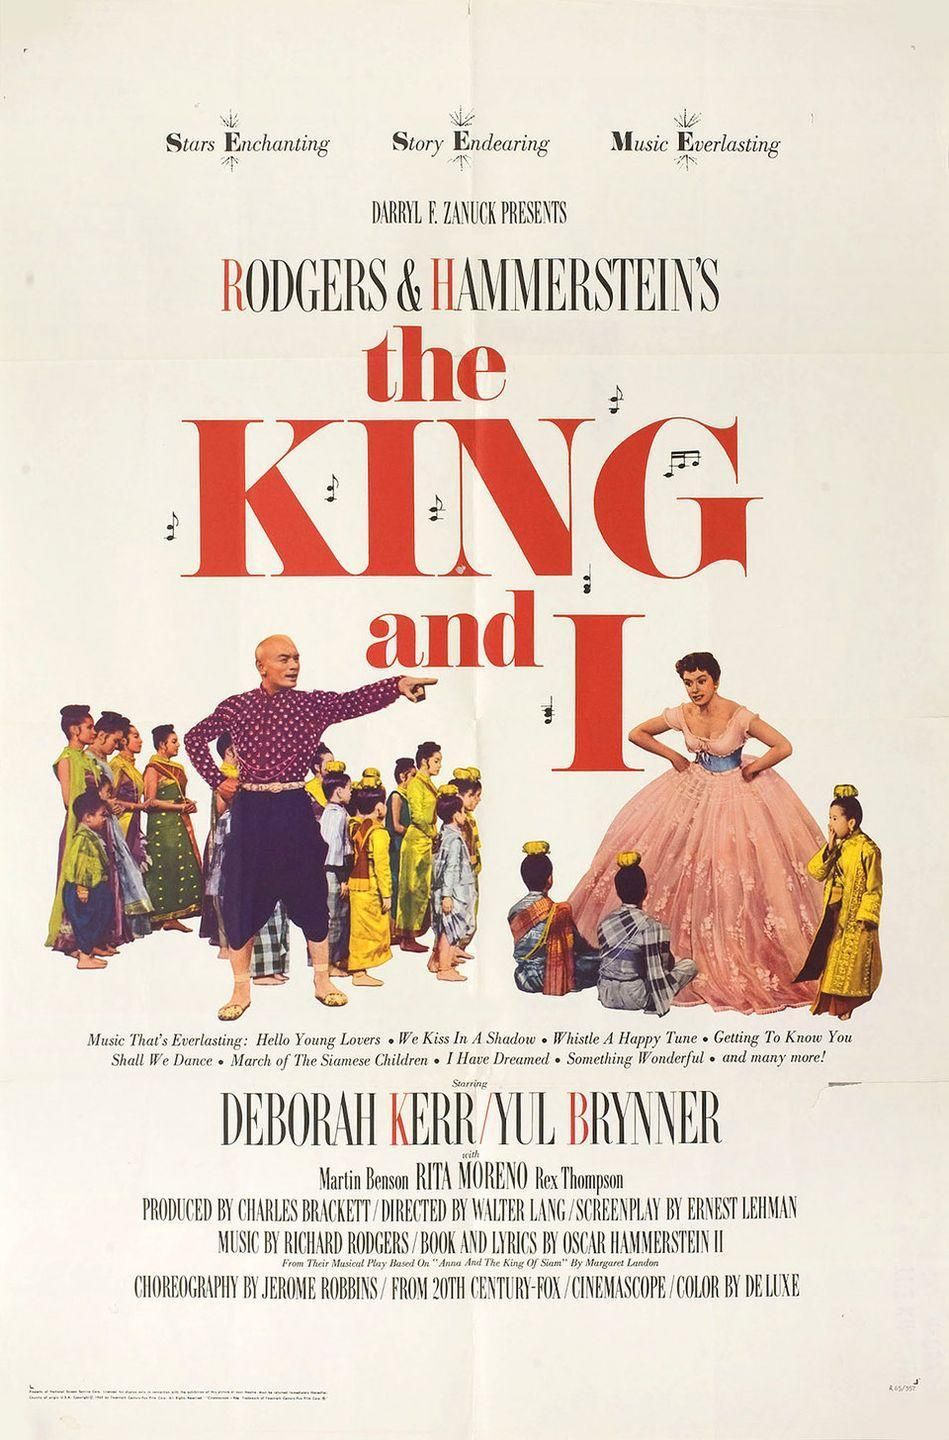 "<p>Rodgers & Hammerstein gave us gems like <em>The Sound of Music, Carousel</em>, and this story about a woman hired to be the governess (Deborah Kerr) and English tutor for the children of the King of Siam (Yul Brynner). Things get off to a rough start but you could probably imagine what happens next (if you haven't already seen it.) It's the musical you should queue up when you need a little romance in your life.</p><p><a class=""link rapid-noclick-resp"" href=""https://www.amazon.com/King-I-Deborah-Kerr/dp/B00480H3UI/ref=sr_1_1?tag=syn-yahoo-20&ascsubtag=%5Bartid%7C10063.g.34344525%5Bsrc%7Cyahoo-us"" rel=""nofollow noopener"" target=""_blank"" data-ylk=""slk:WATCH NOW"">WATCH NOW</a></p>"